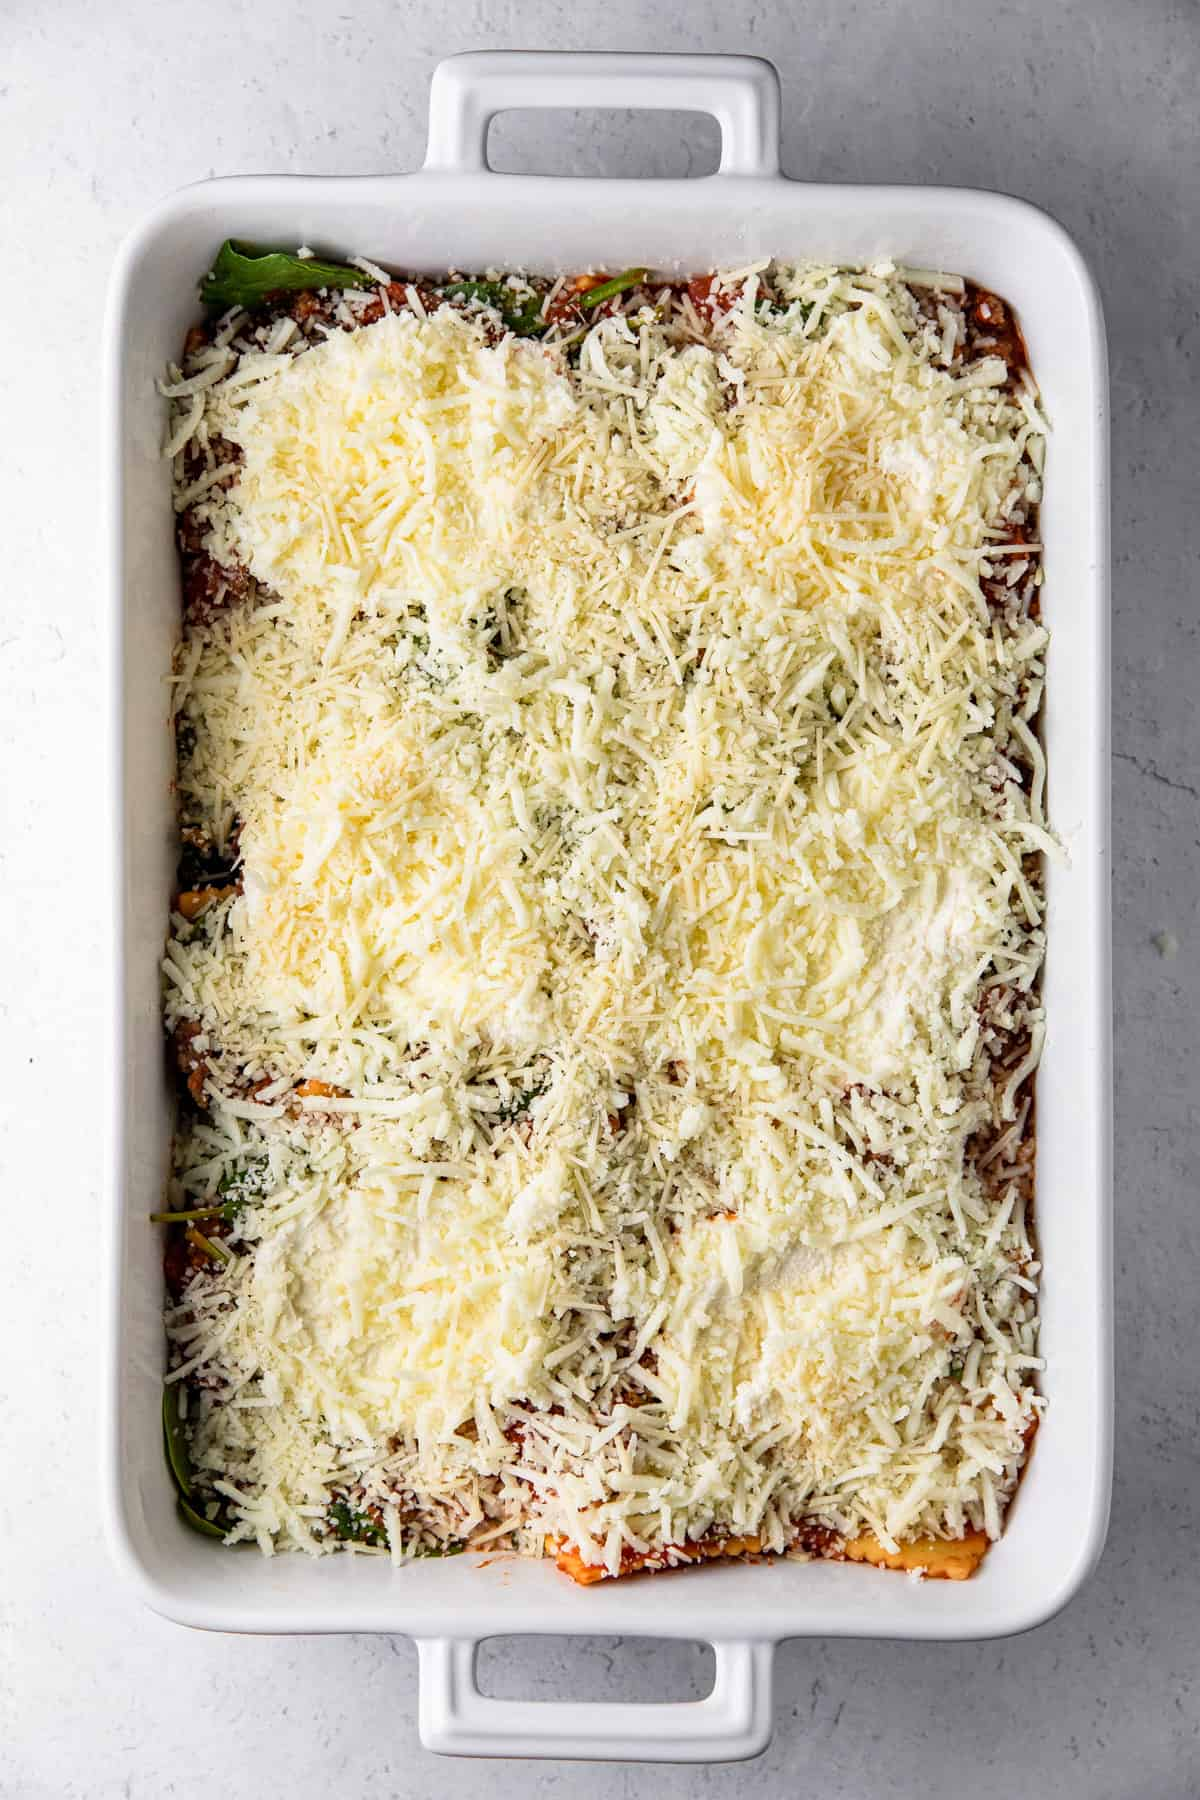 casserole dish with ravioli mixture, ricotta and shredded cheeses